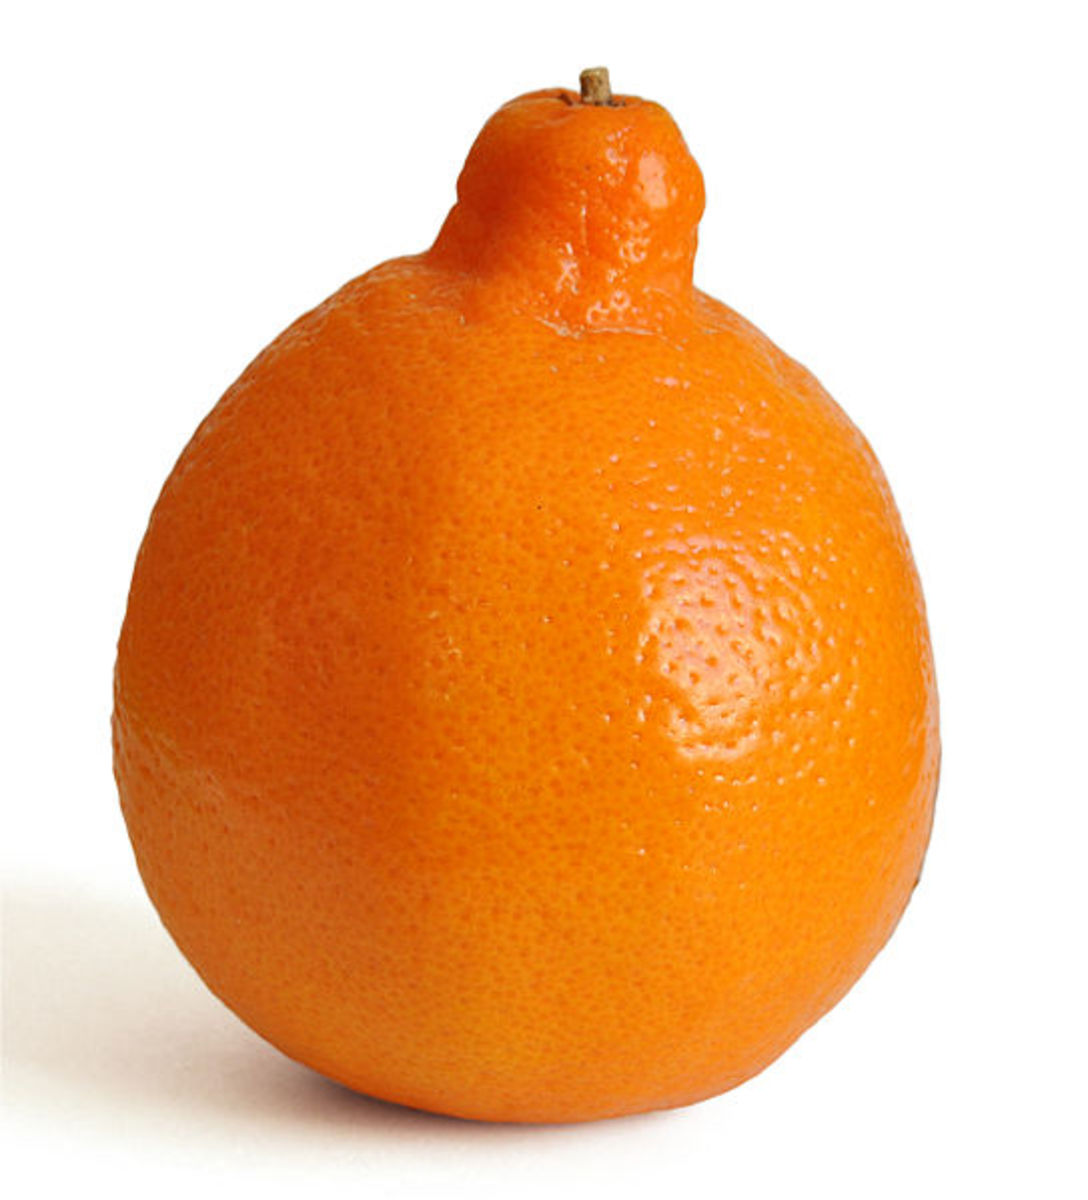 This minneola was photographed by Amada44 on January 15, 2011.